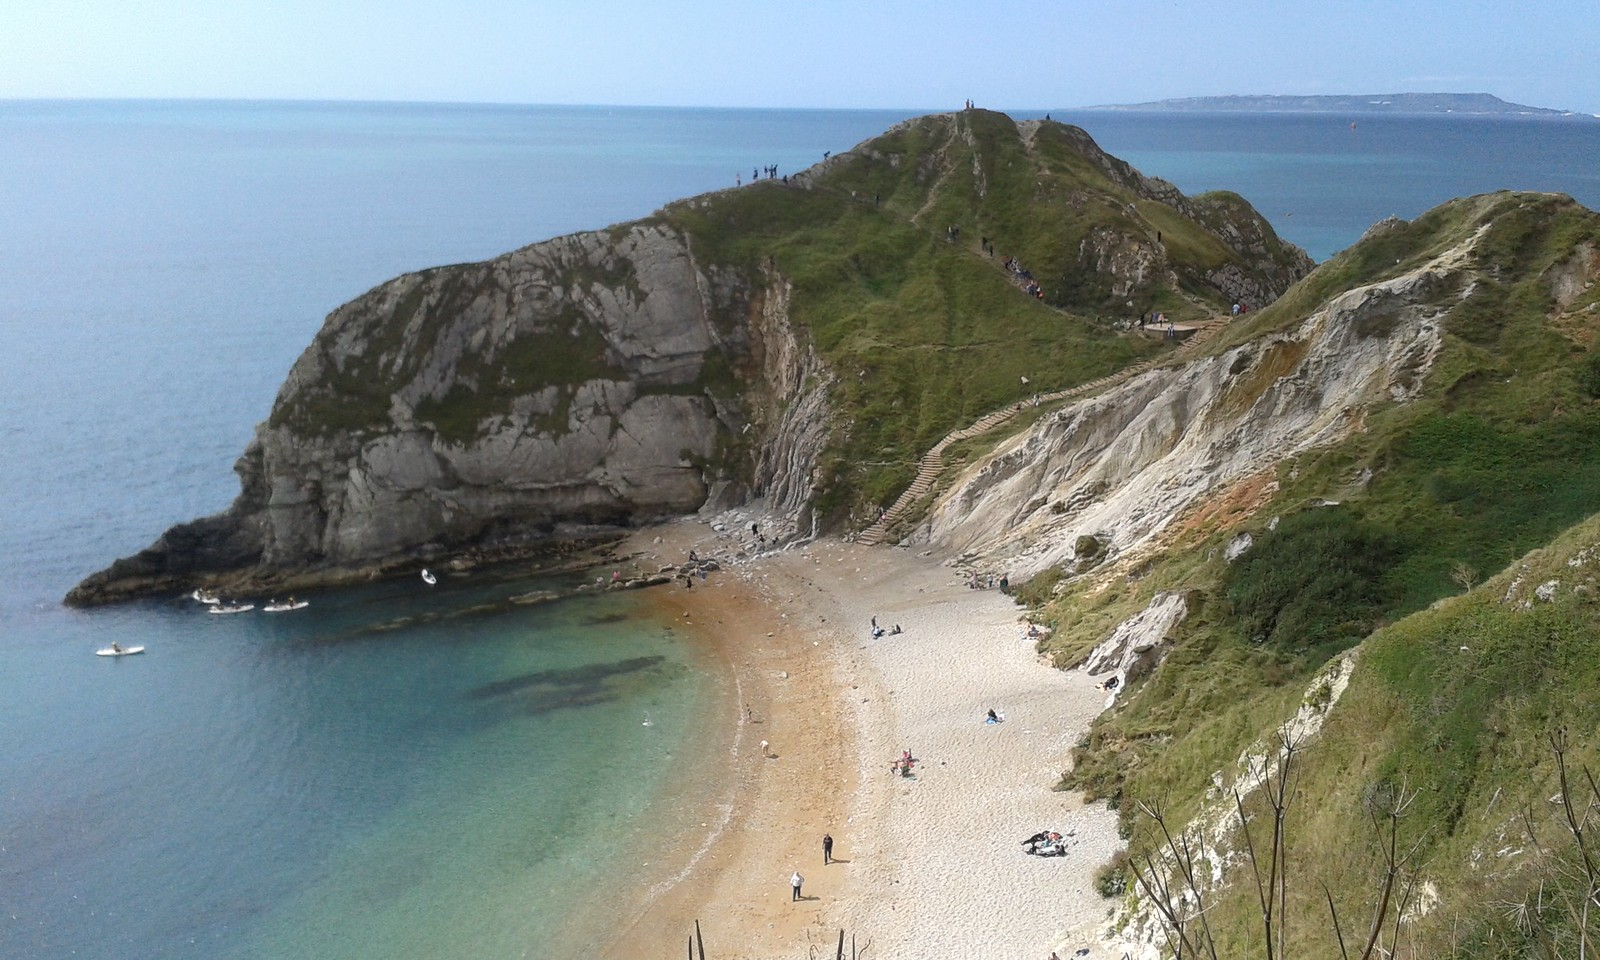 20150815_113635 Near Durdle Door